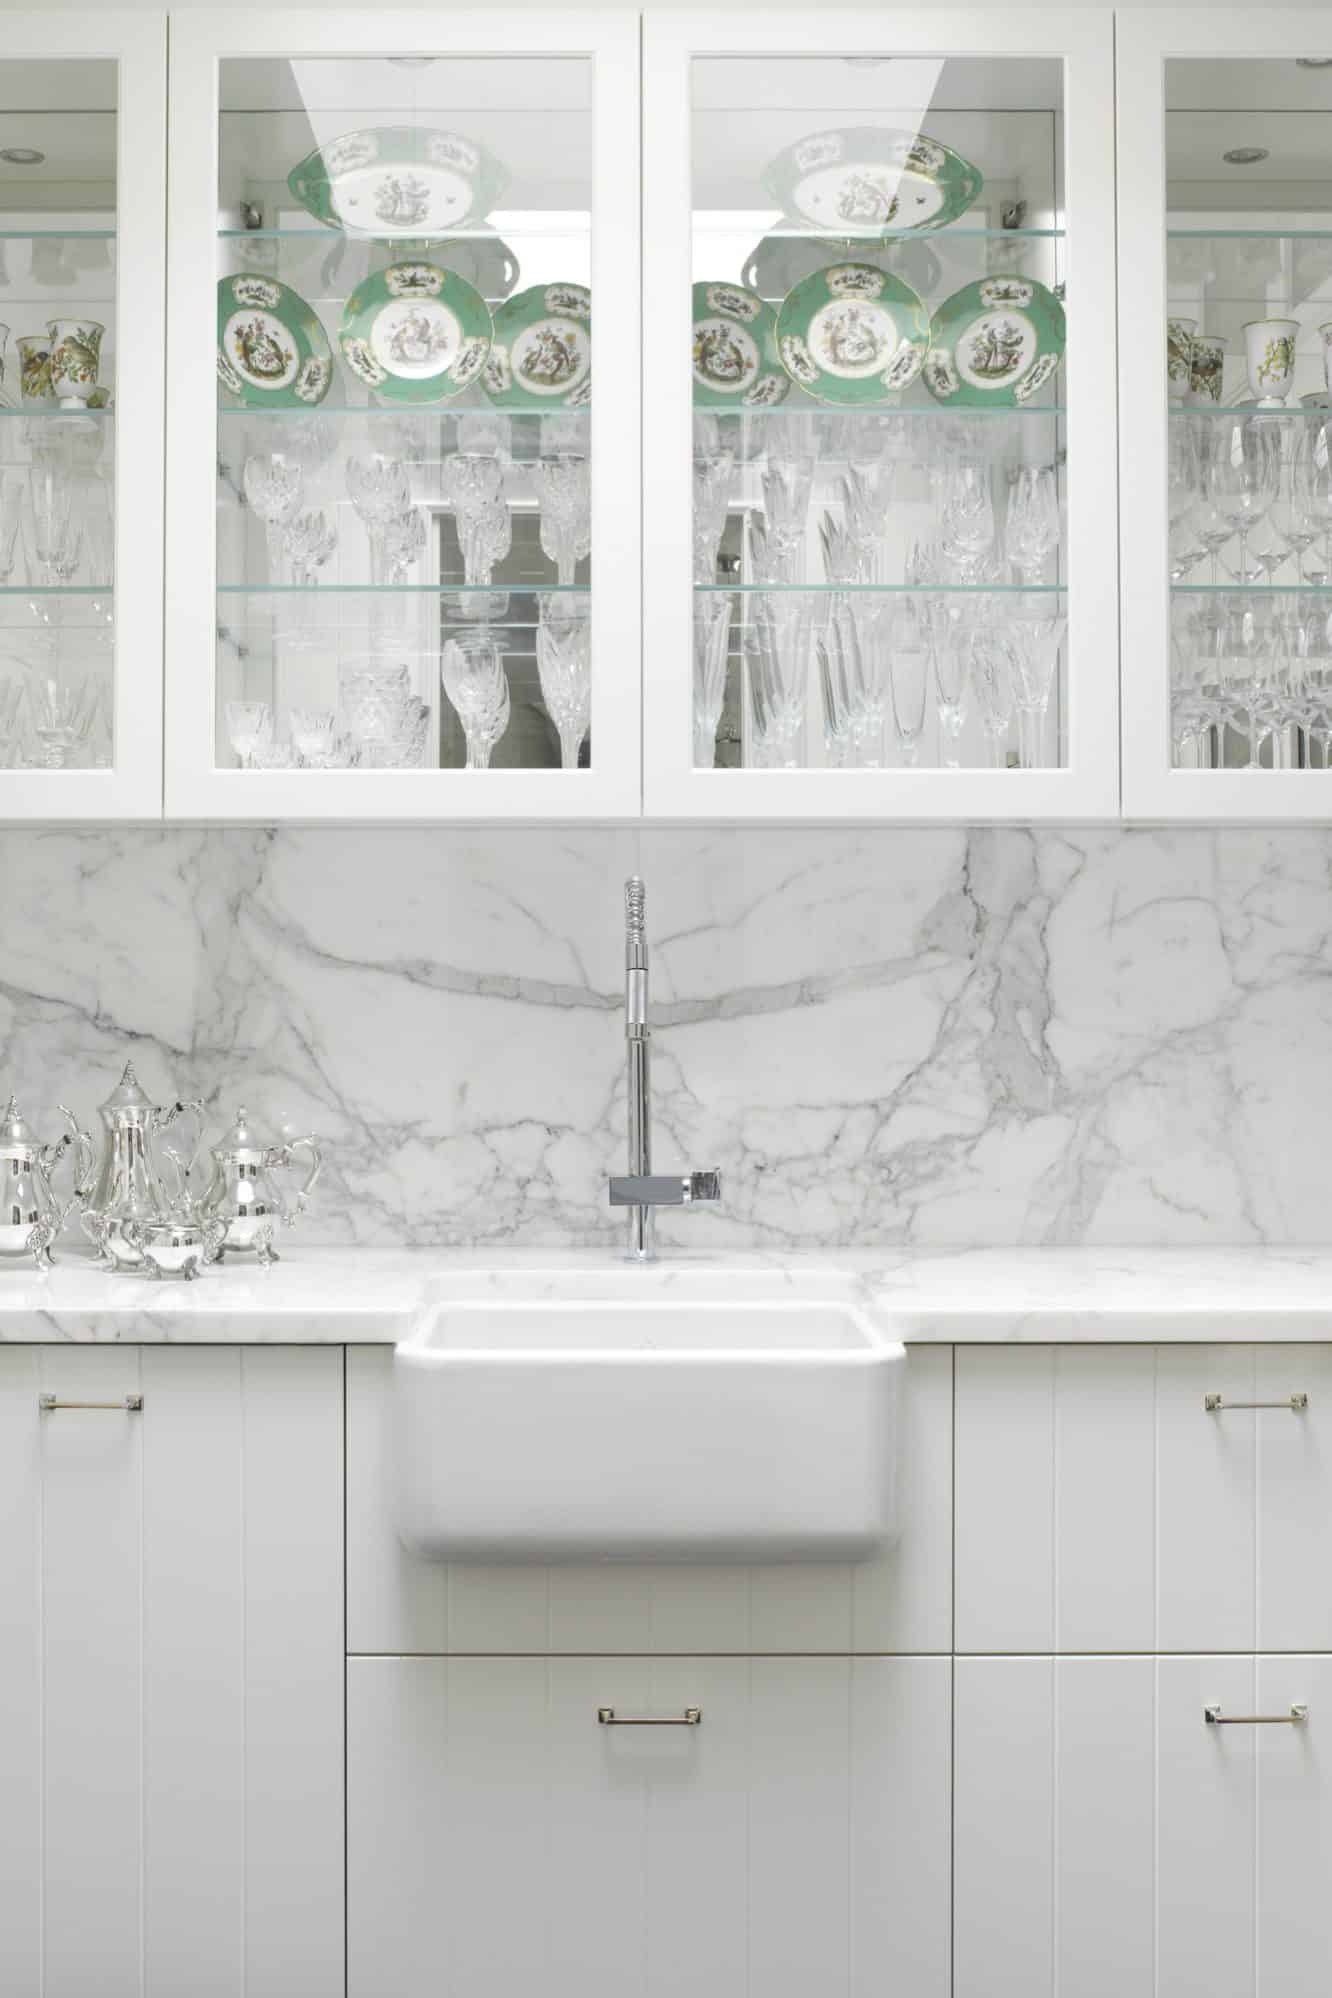 Farmhouse fireclay sink within the scullery